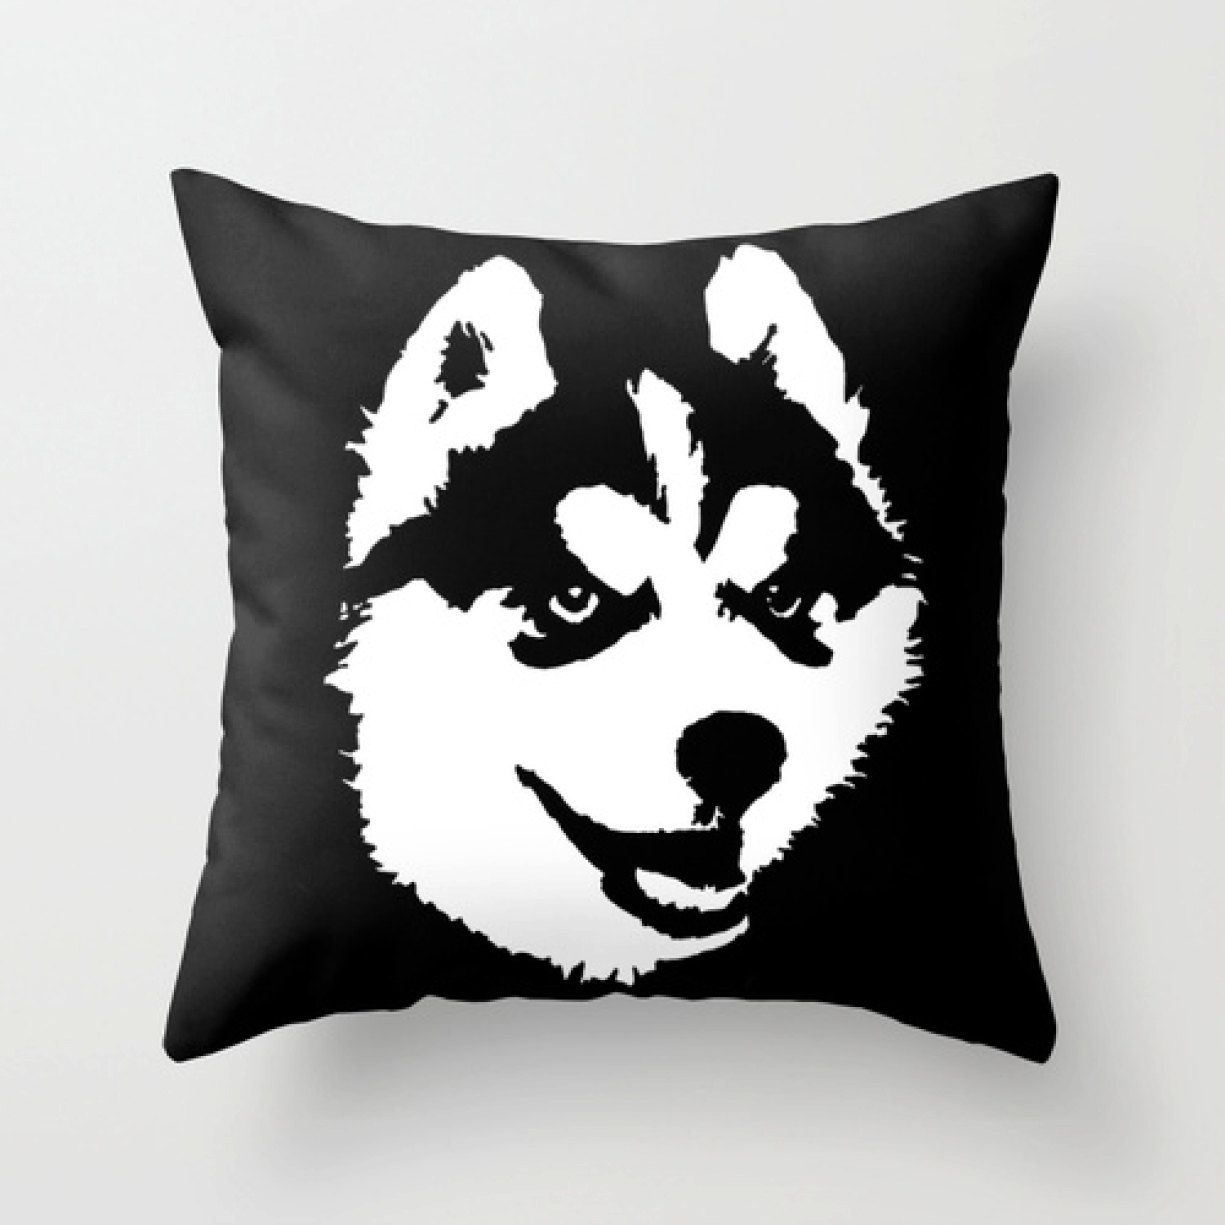 Siberian husky pillow custom dog pillow black white nursery decor